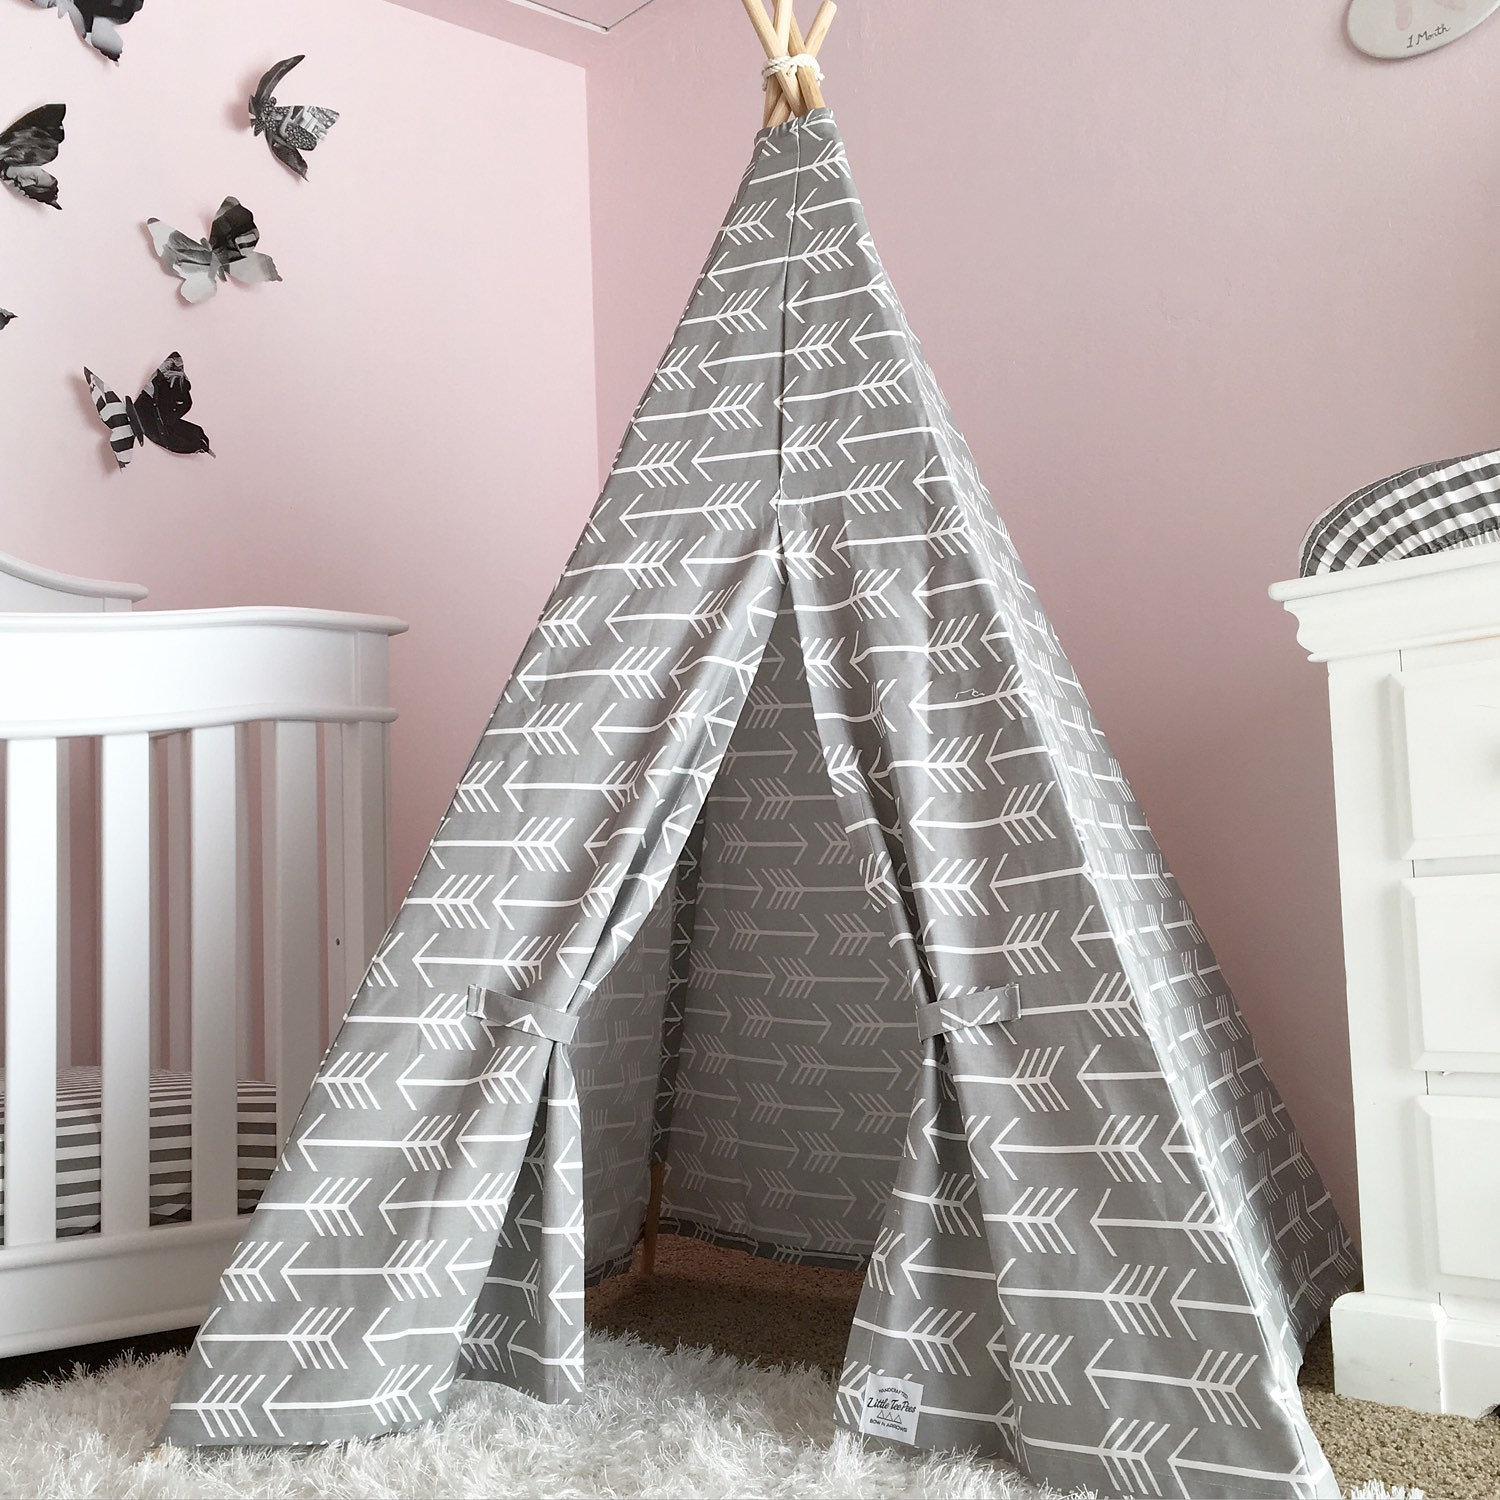 Design Kids Teepee little brave ones kids teepee tents grey arrow cotton canvas this is simple stylish and gender neutral the perfect addition to any room or modern nursery